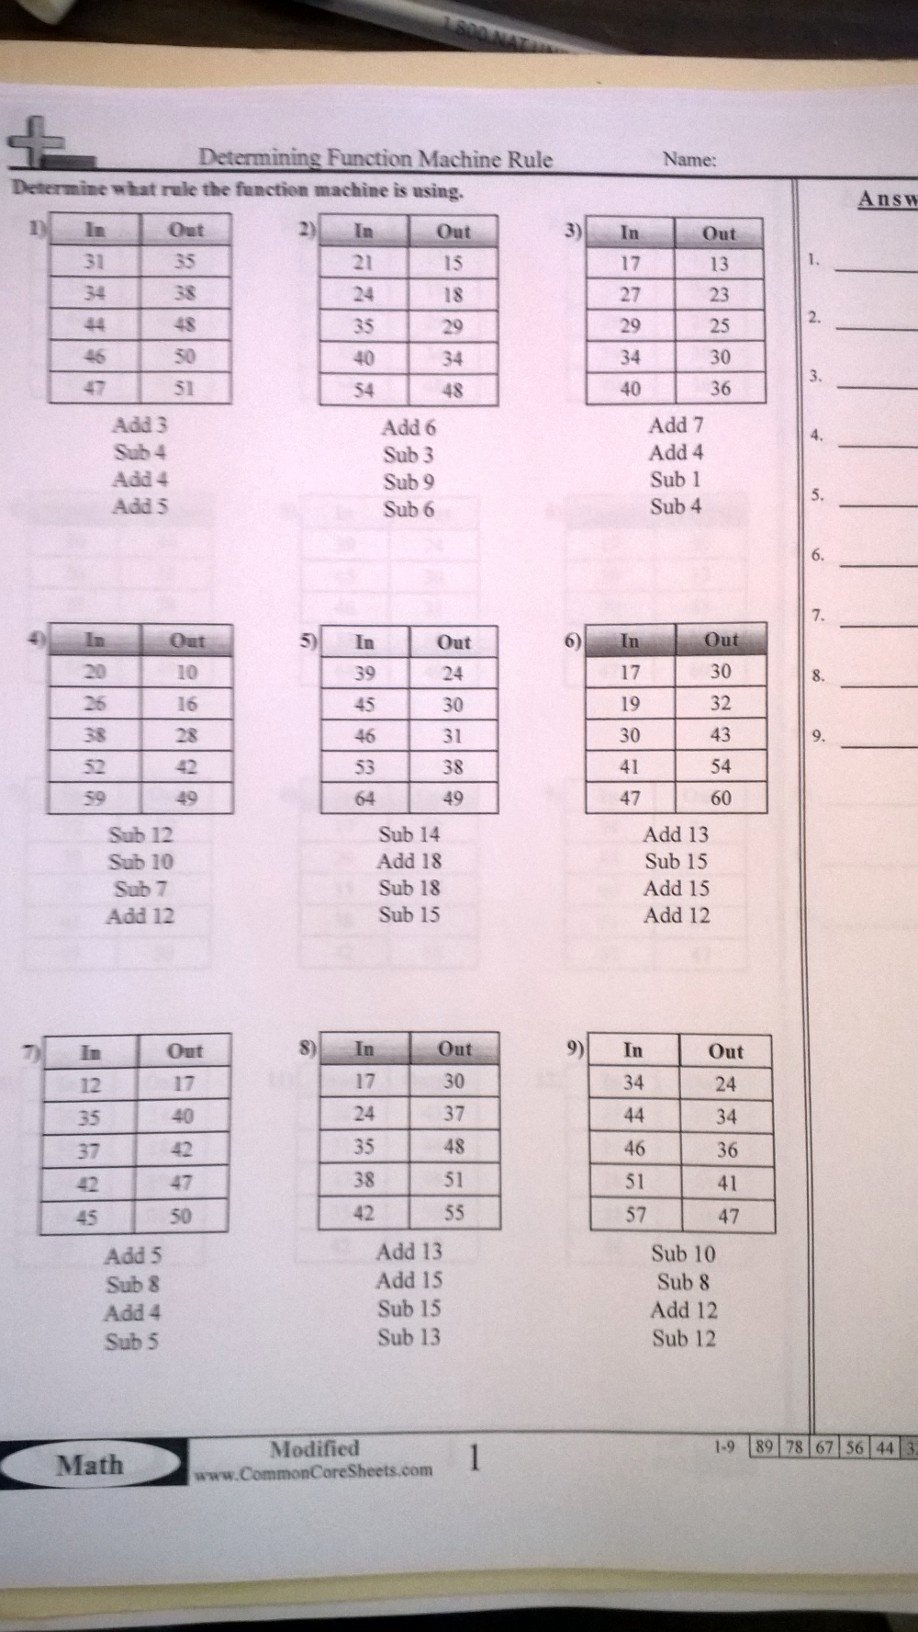 Writing A Function Rule Worksheet Inspirational Blog Archives Mrs Deans Class